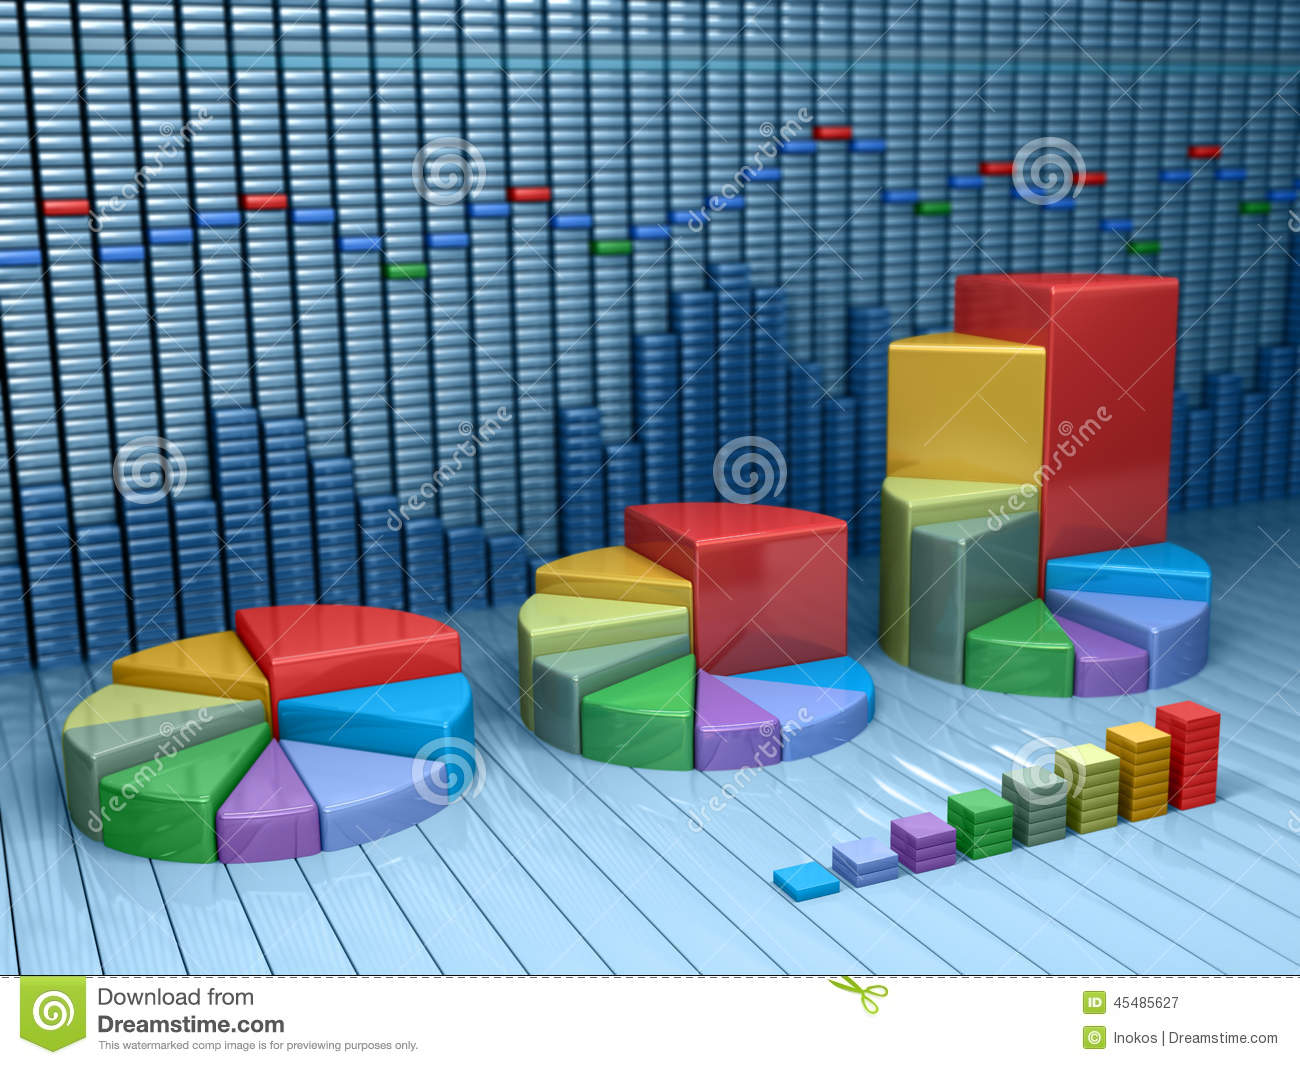 Stock market data with different graphs and charts. Business illustration